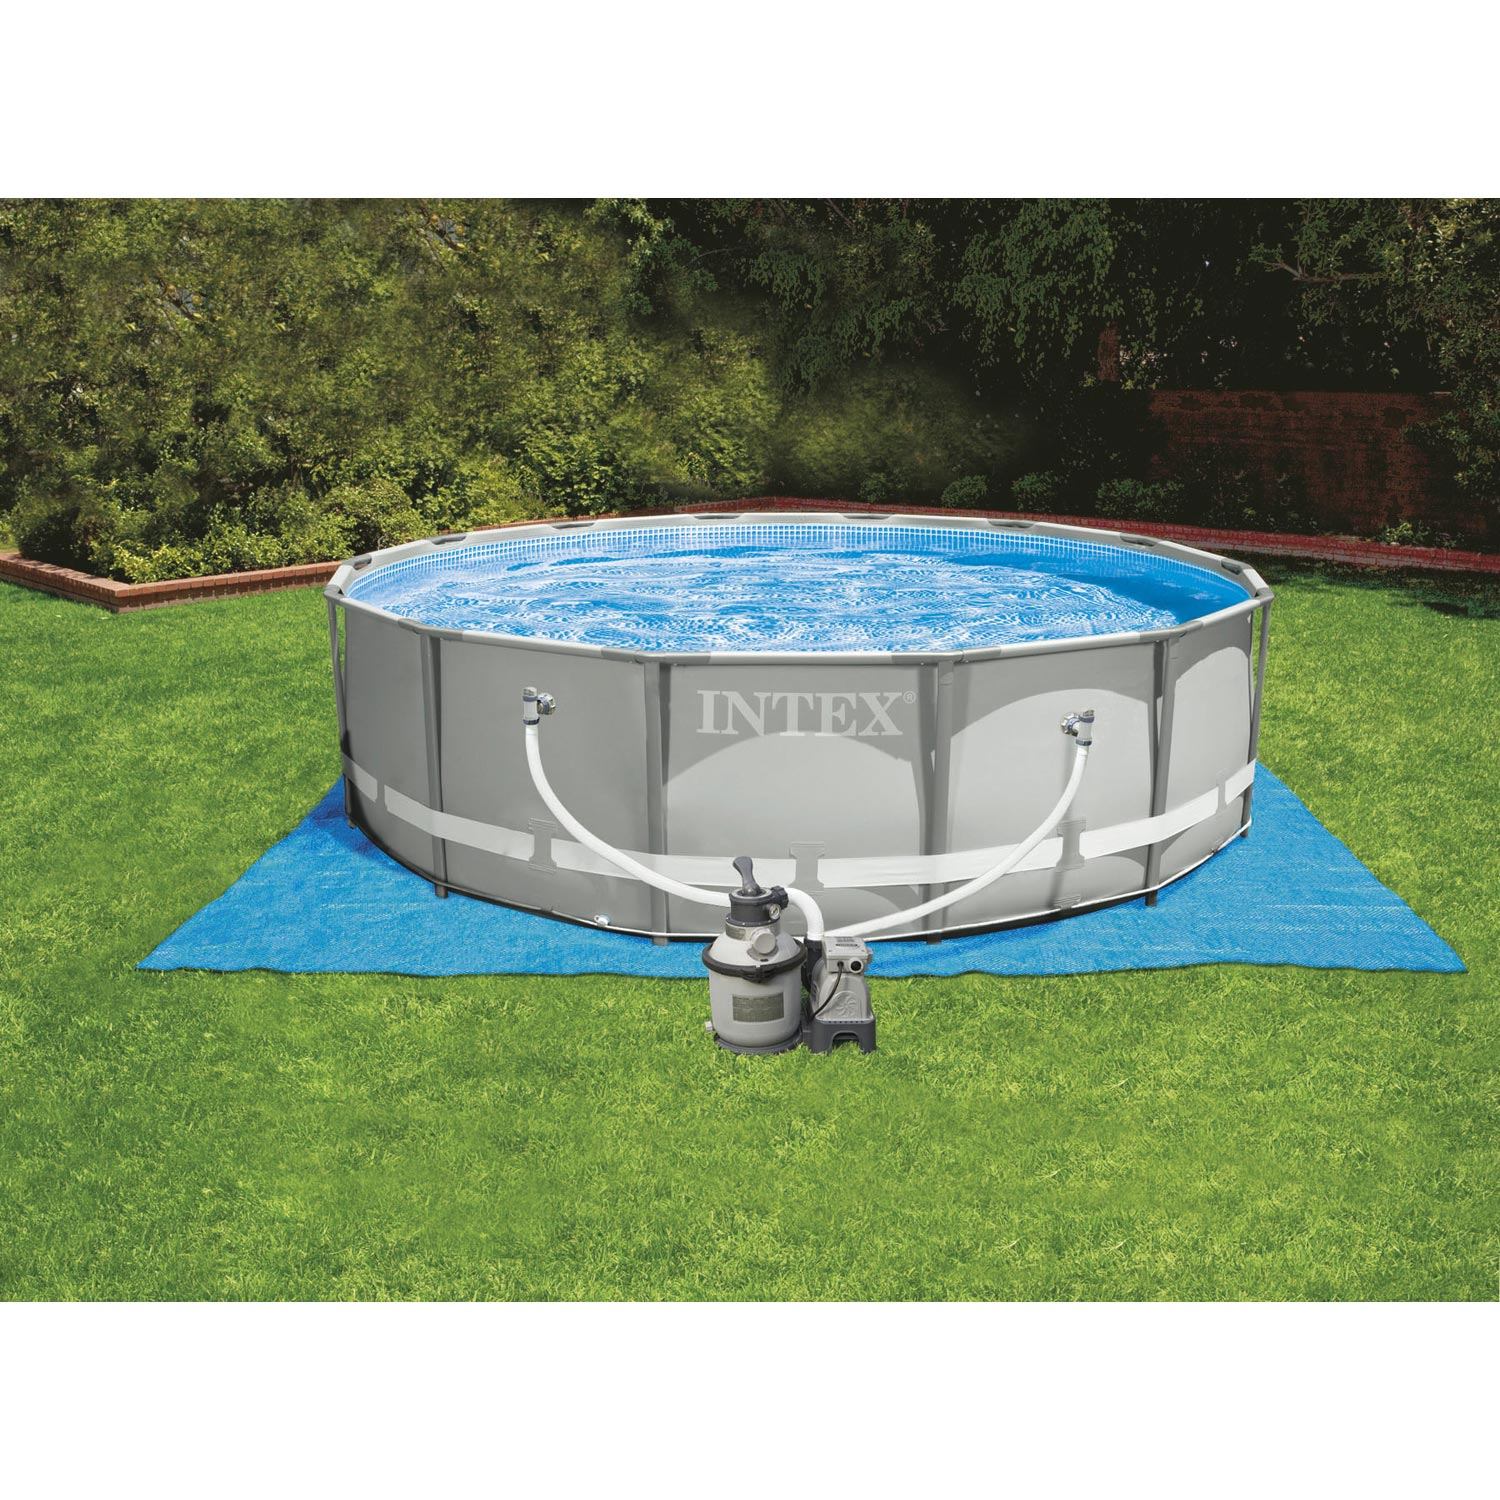 Piscine hors sol autoportante tubulaire ultra frame intex - Piscine hors sol intex castorama ...